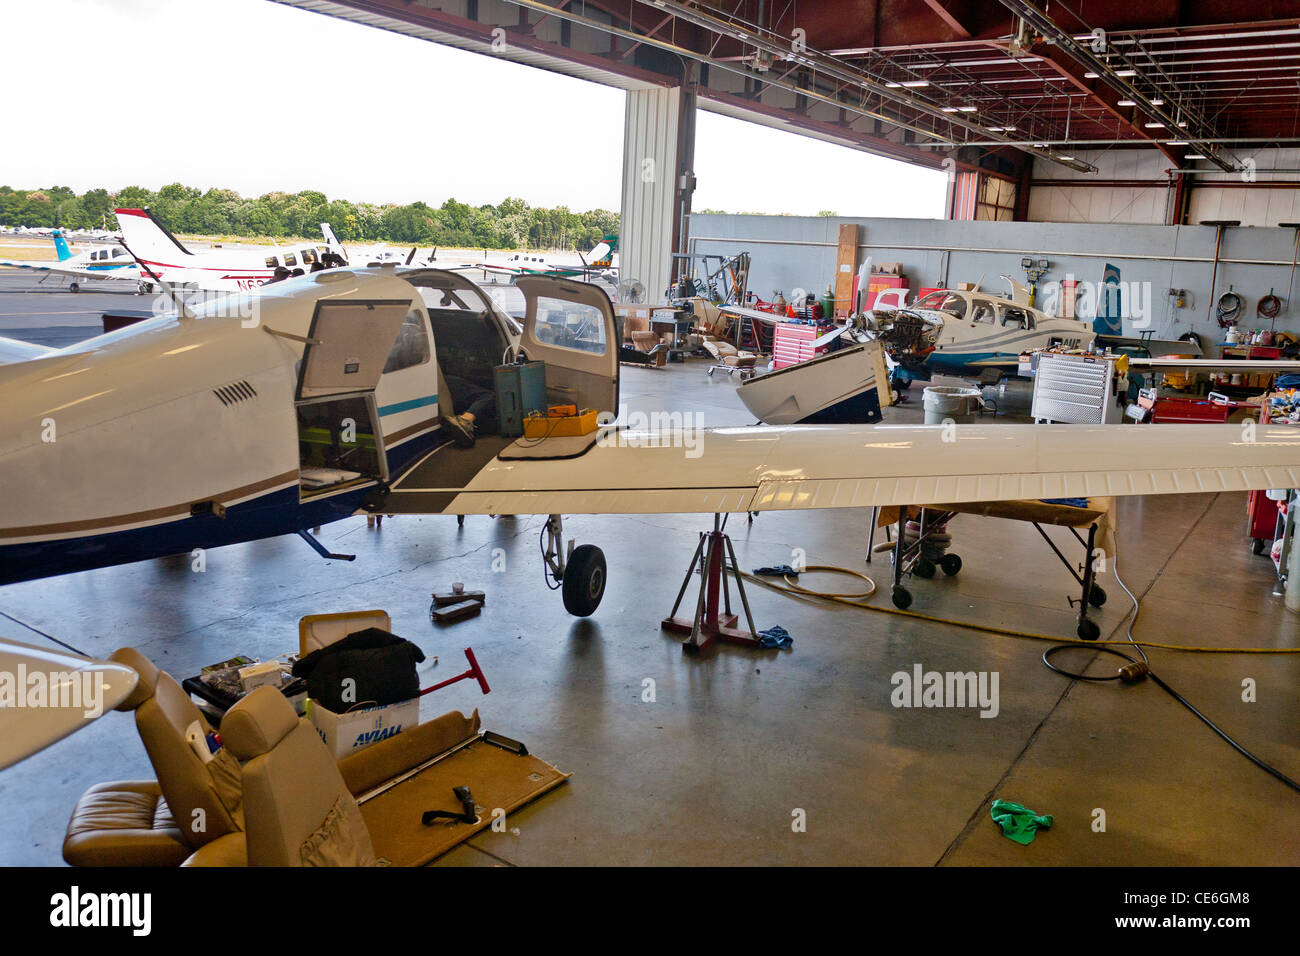 A group of airplane sit inside the airplane hanger having airplane engine repairs being completed airplane engine - Stock Image